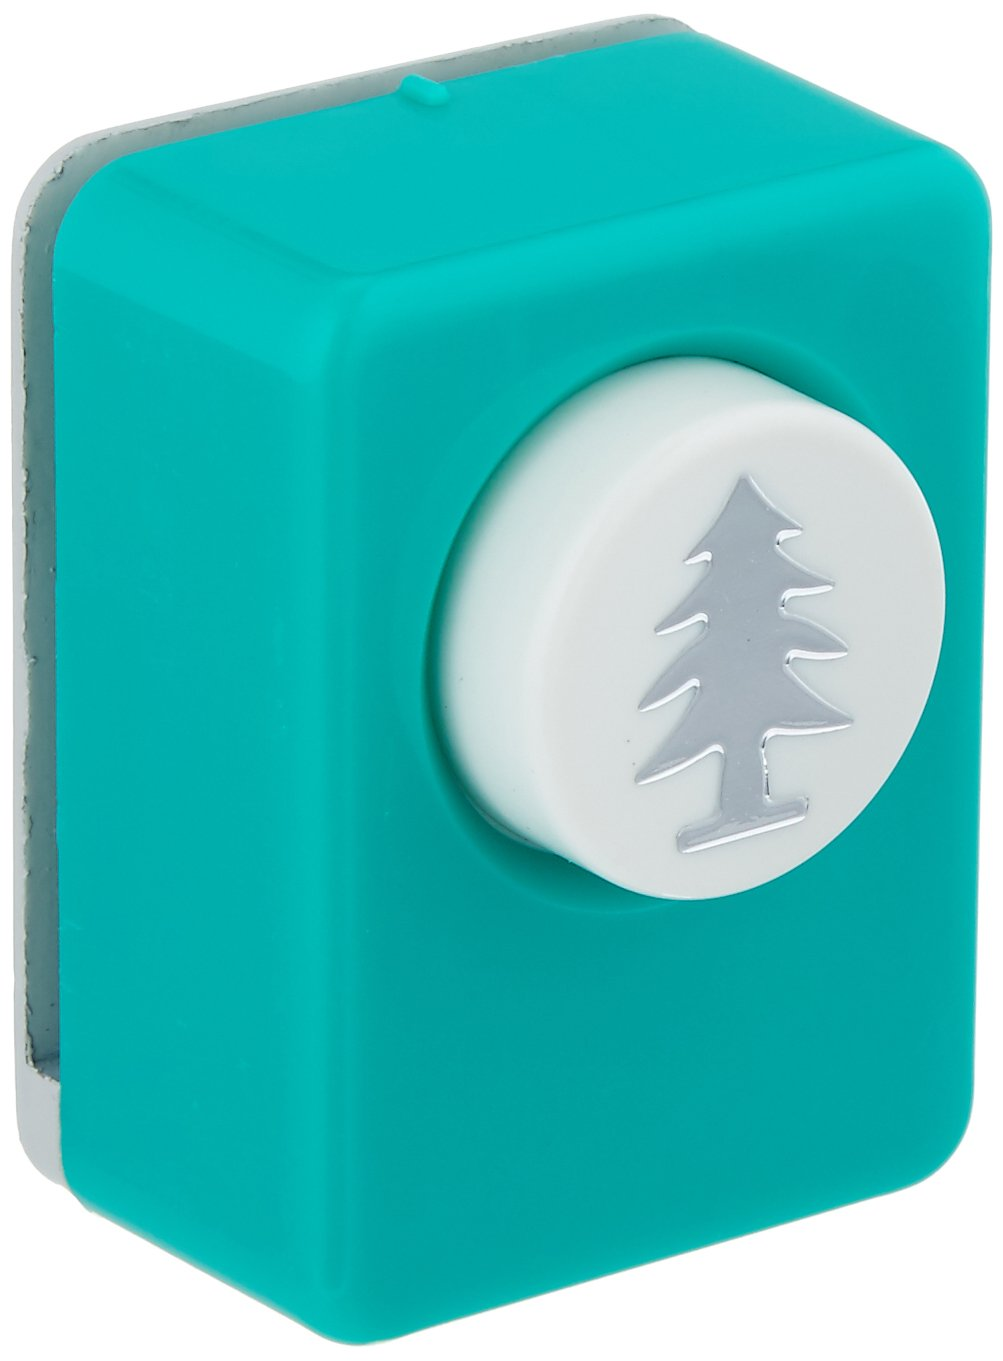 Carl craft small size craft paper punch christmas tree cp 1 carl craft small size craft paper punch christmas tree cp 1 christmas tree jeuxipadfo Choice Image